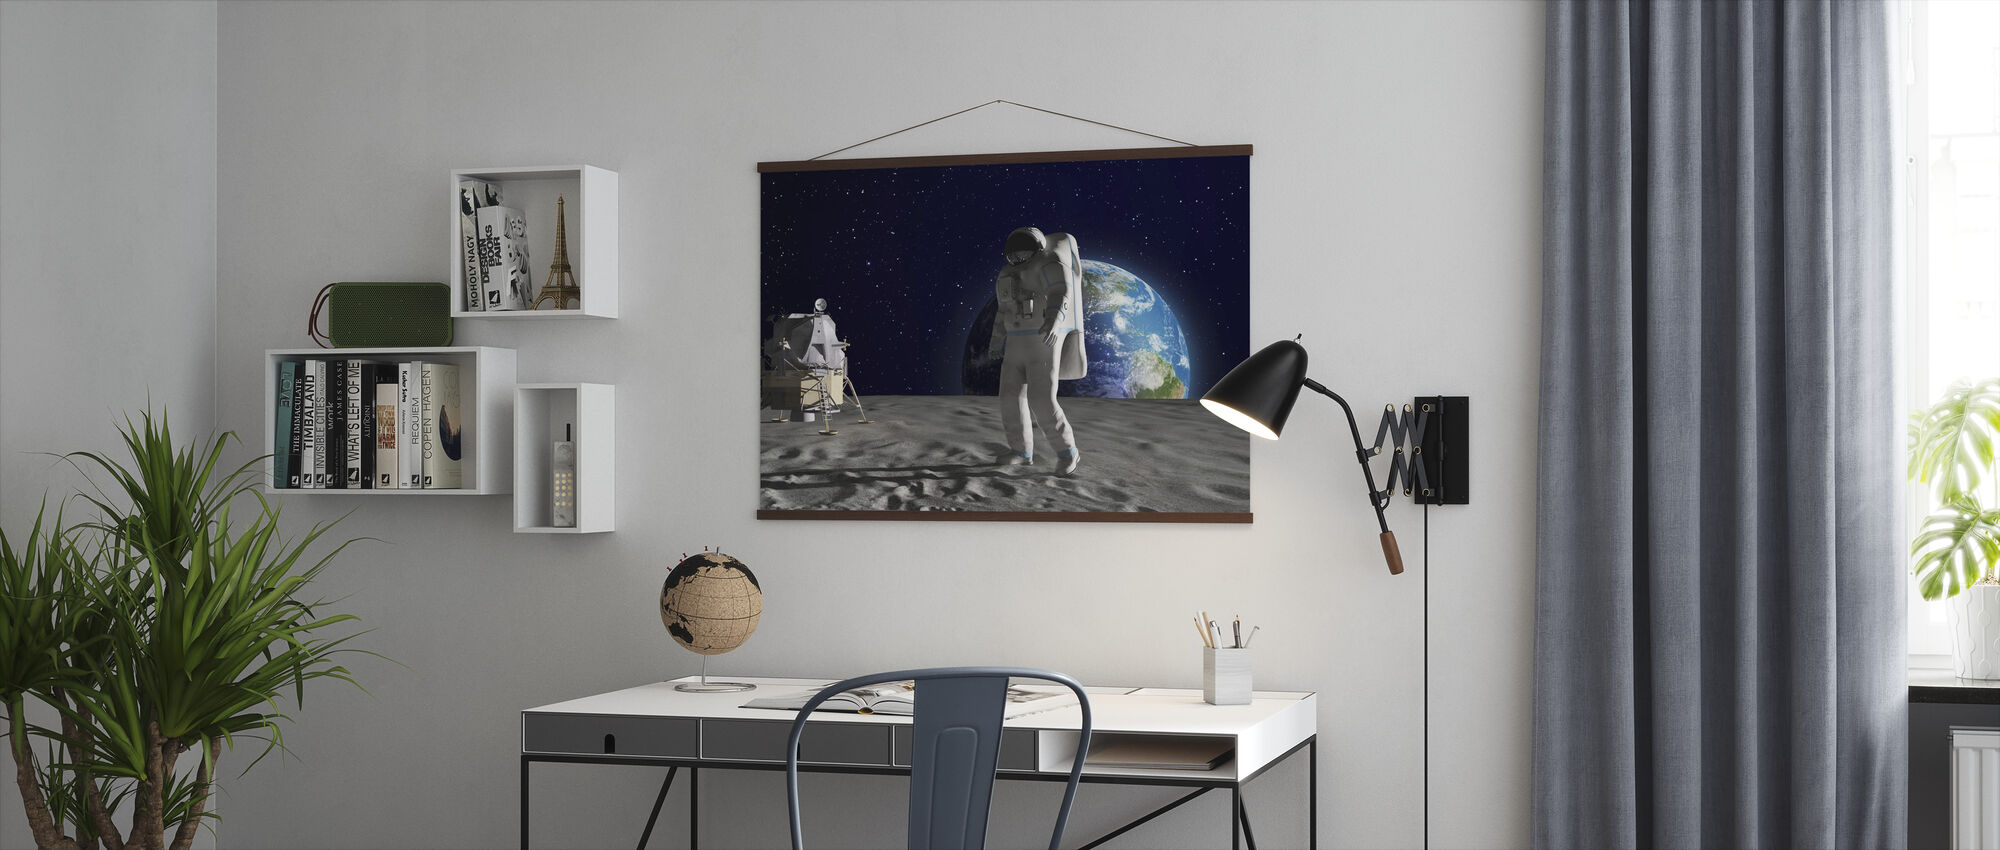 Astronaut on the Moon - Poster - Office